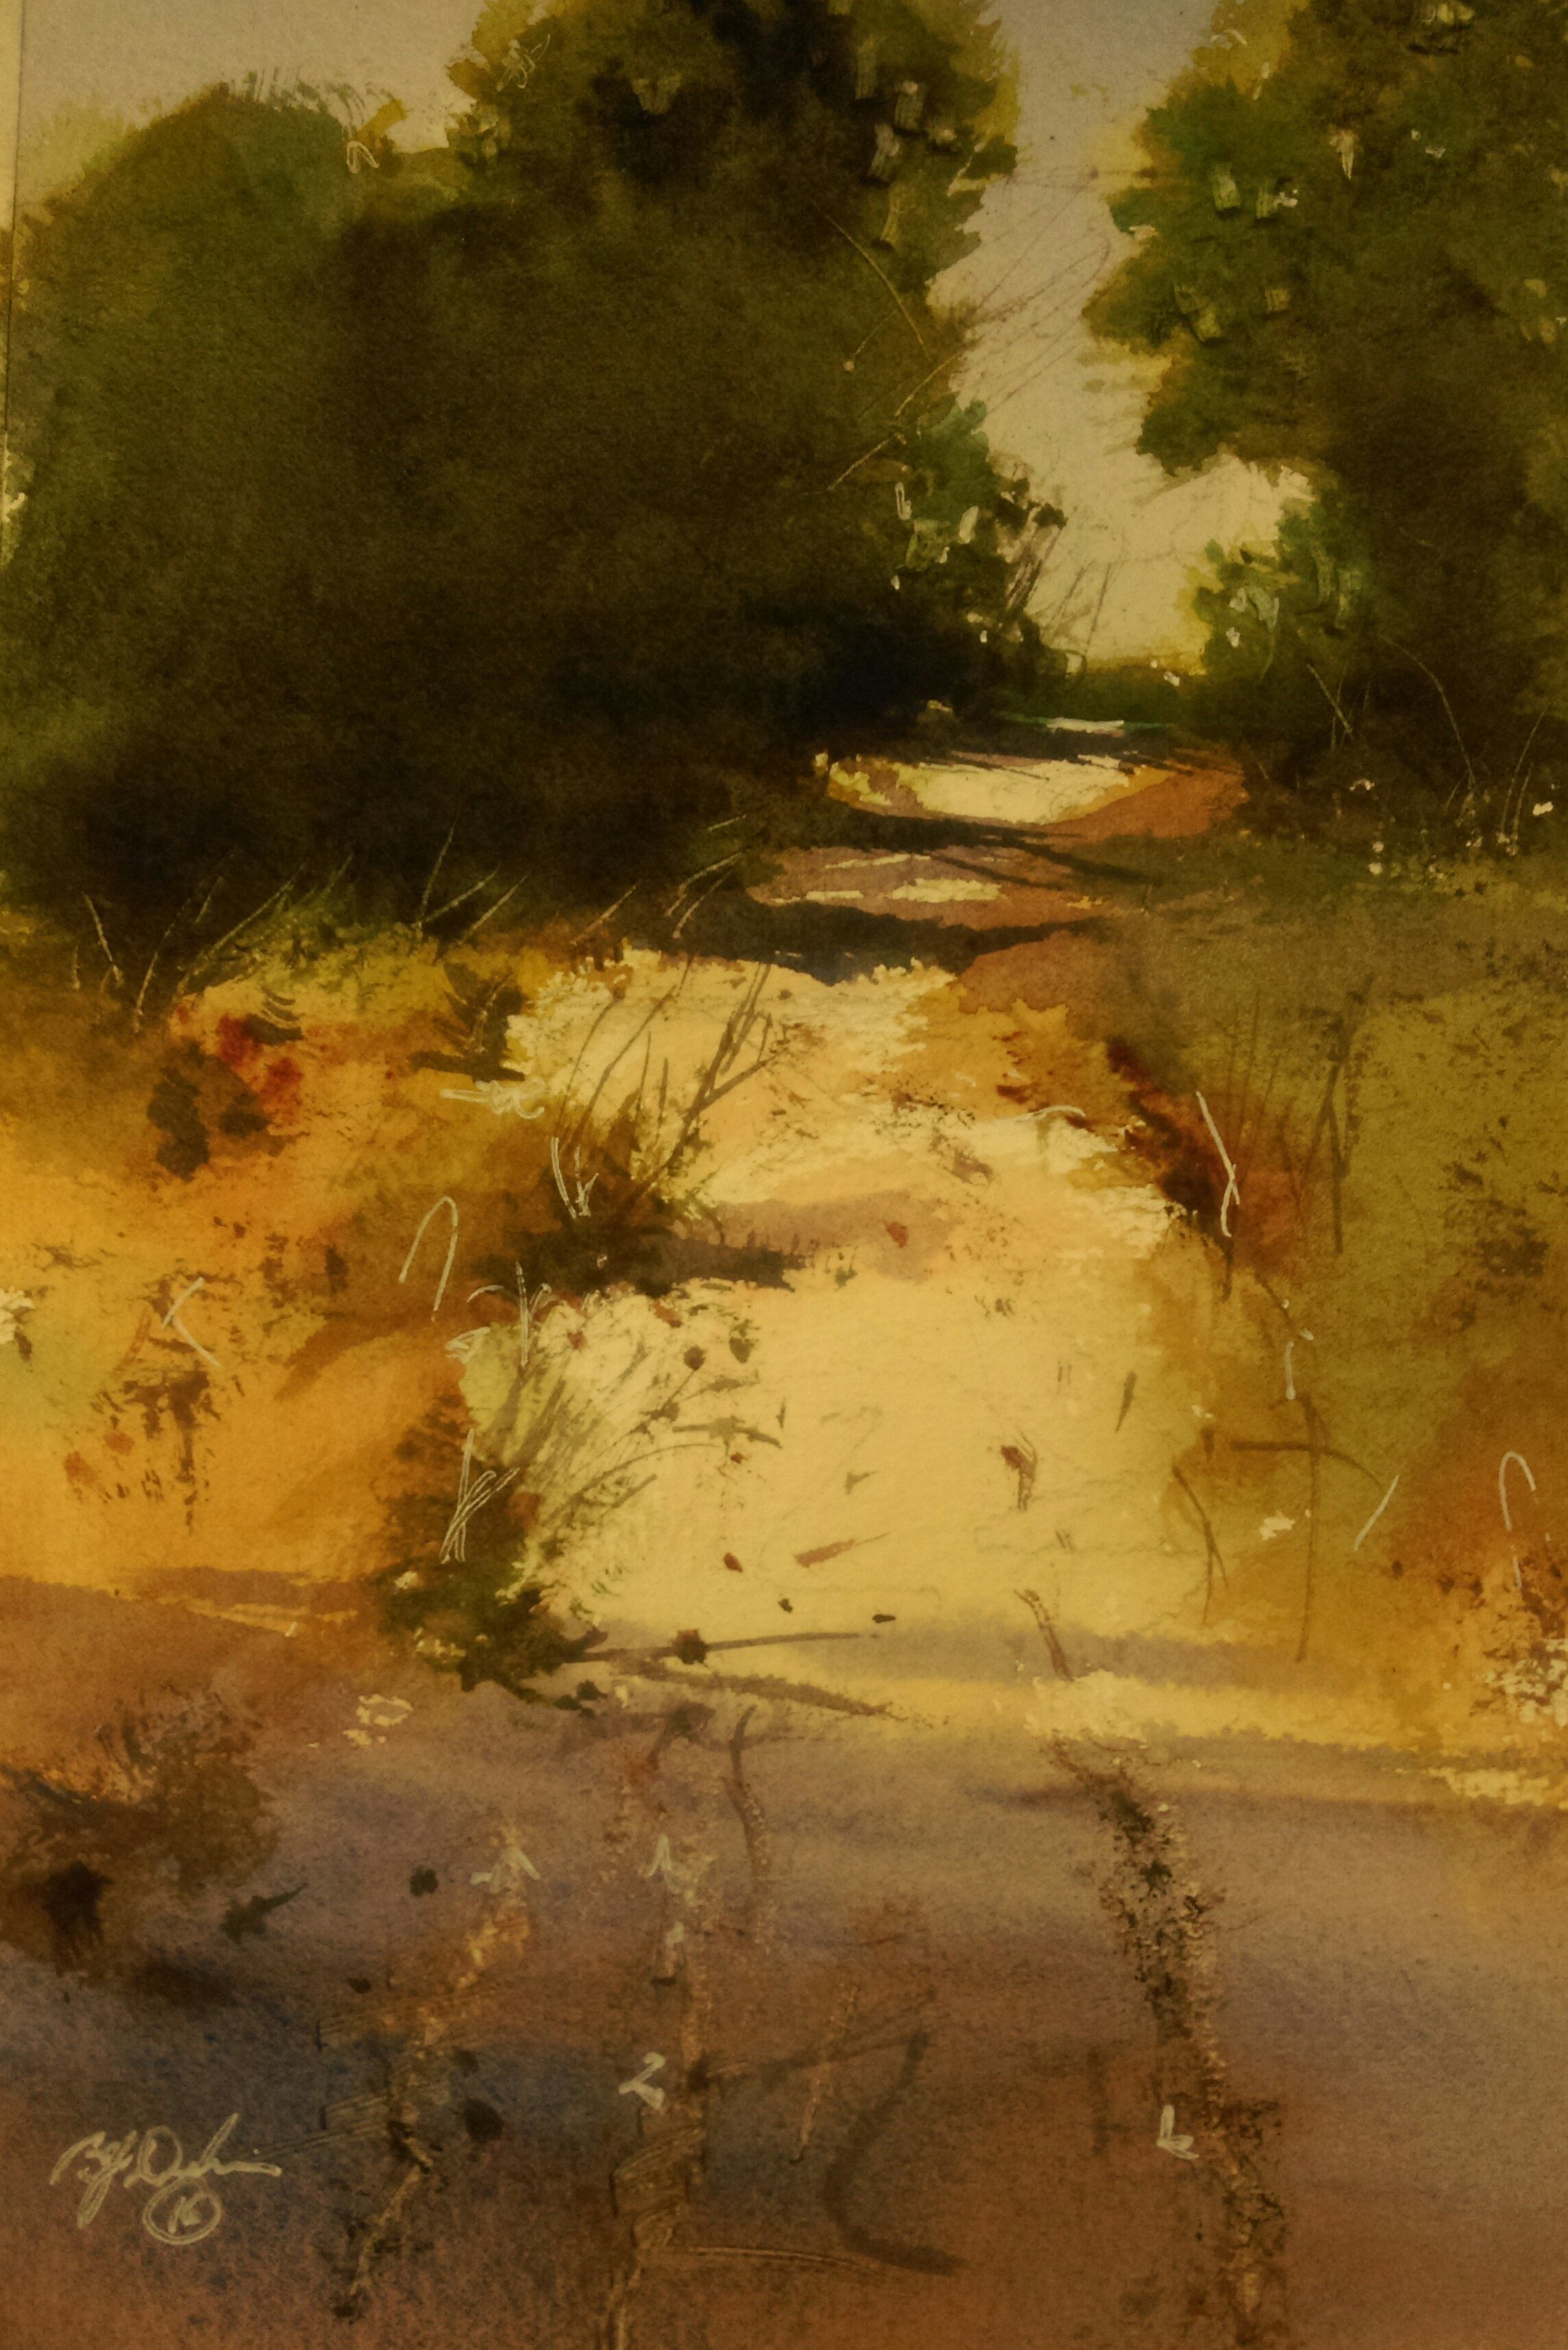 Road To The Beach By Brian Dickinson Paintings For Sale